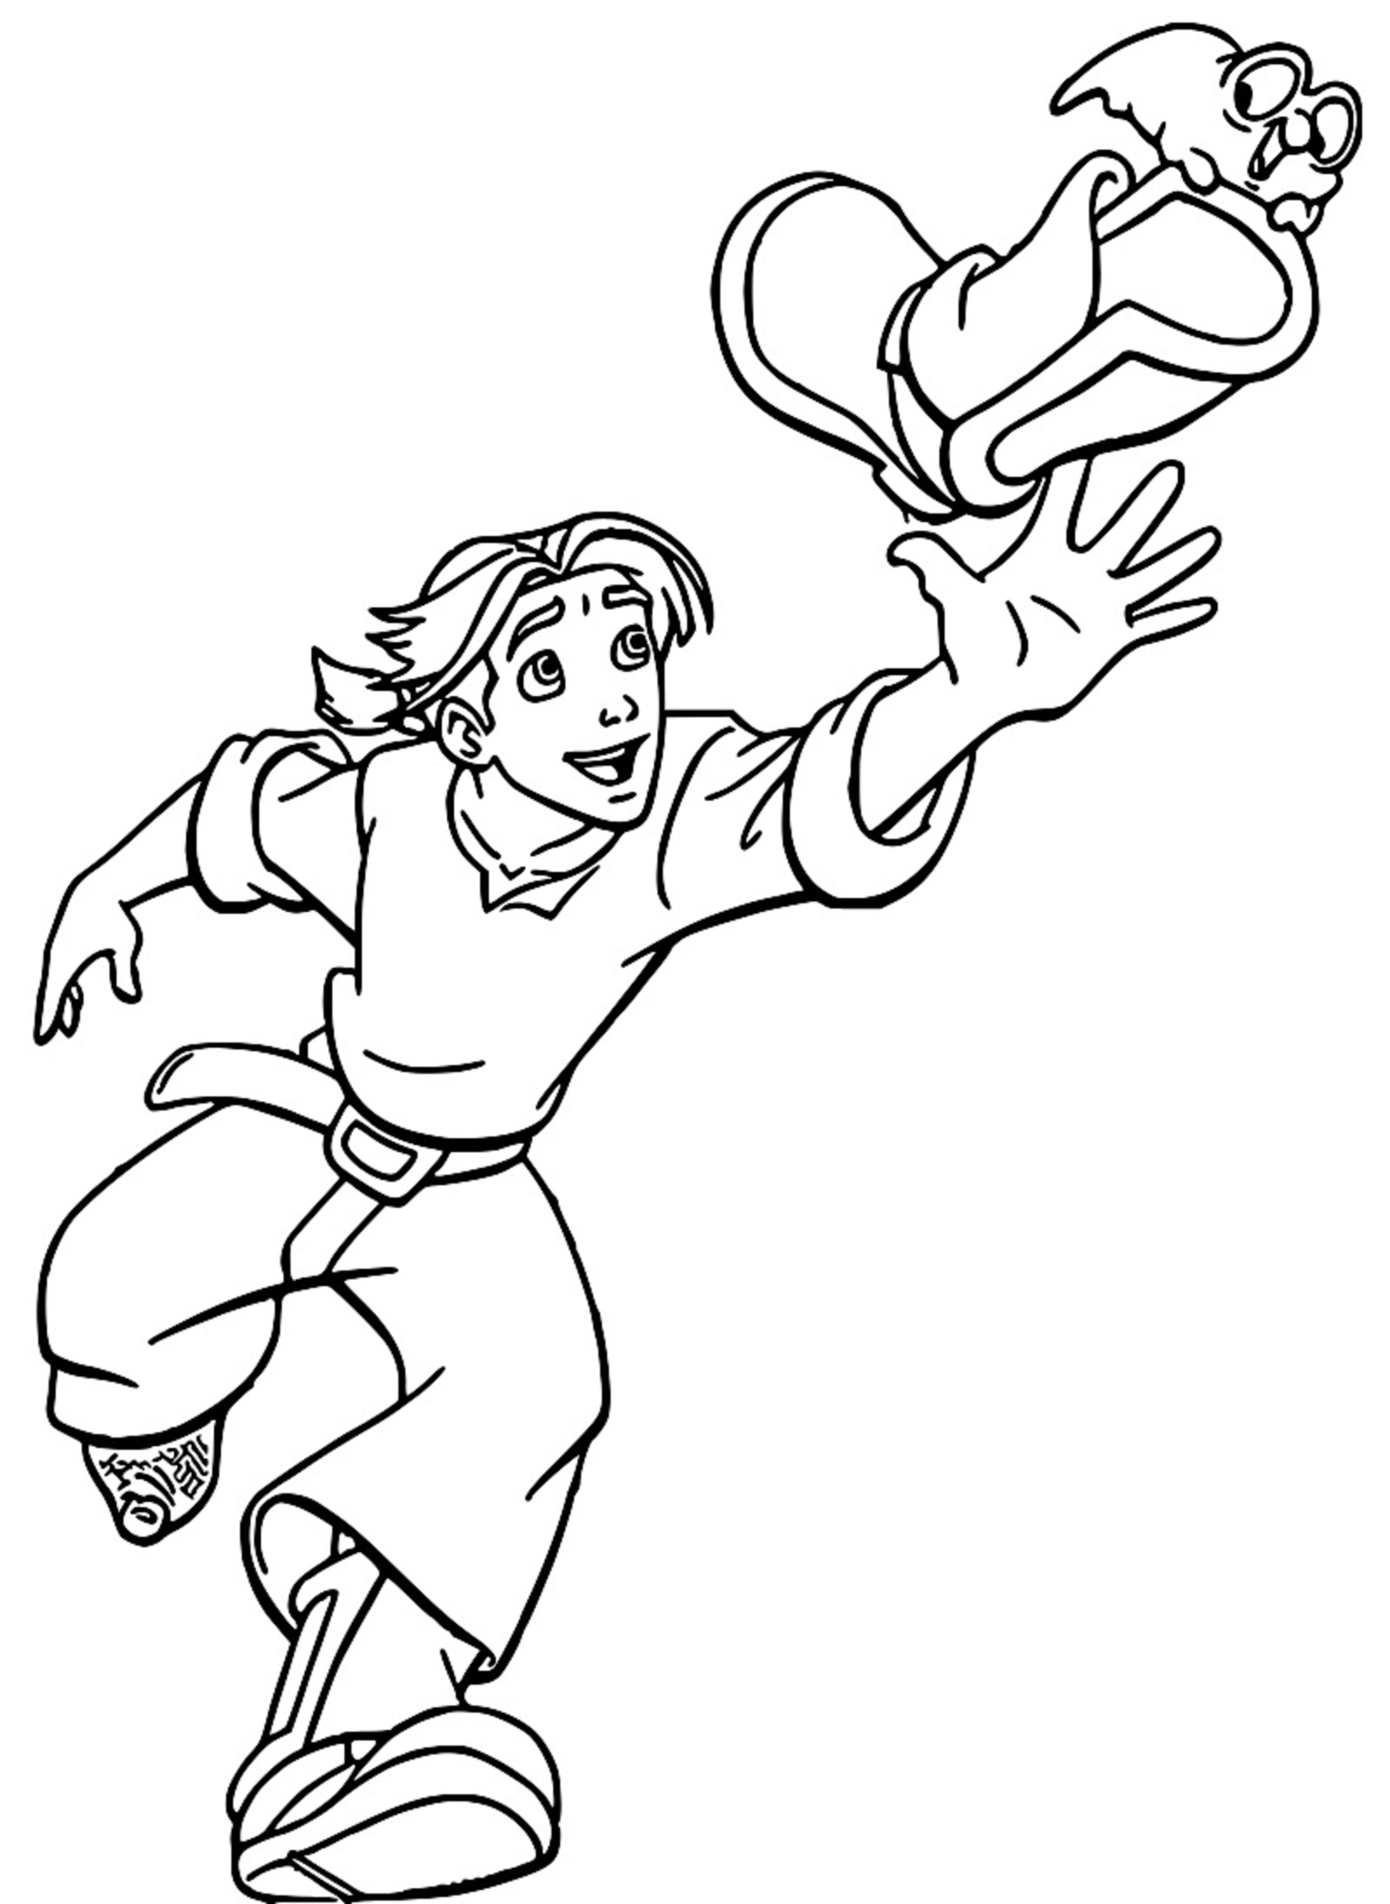 Treasure Planet jim 6 Coloring Pages_Cartoonized